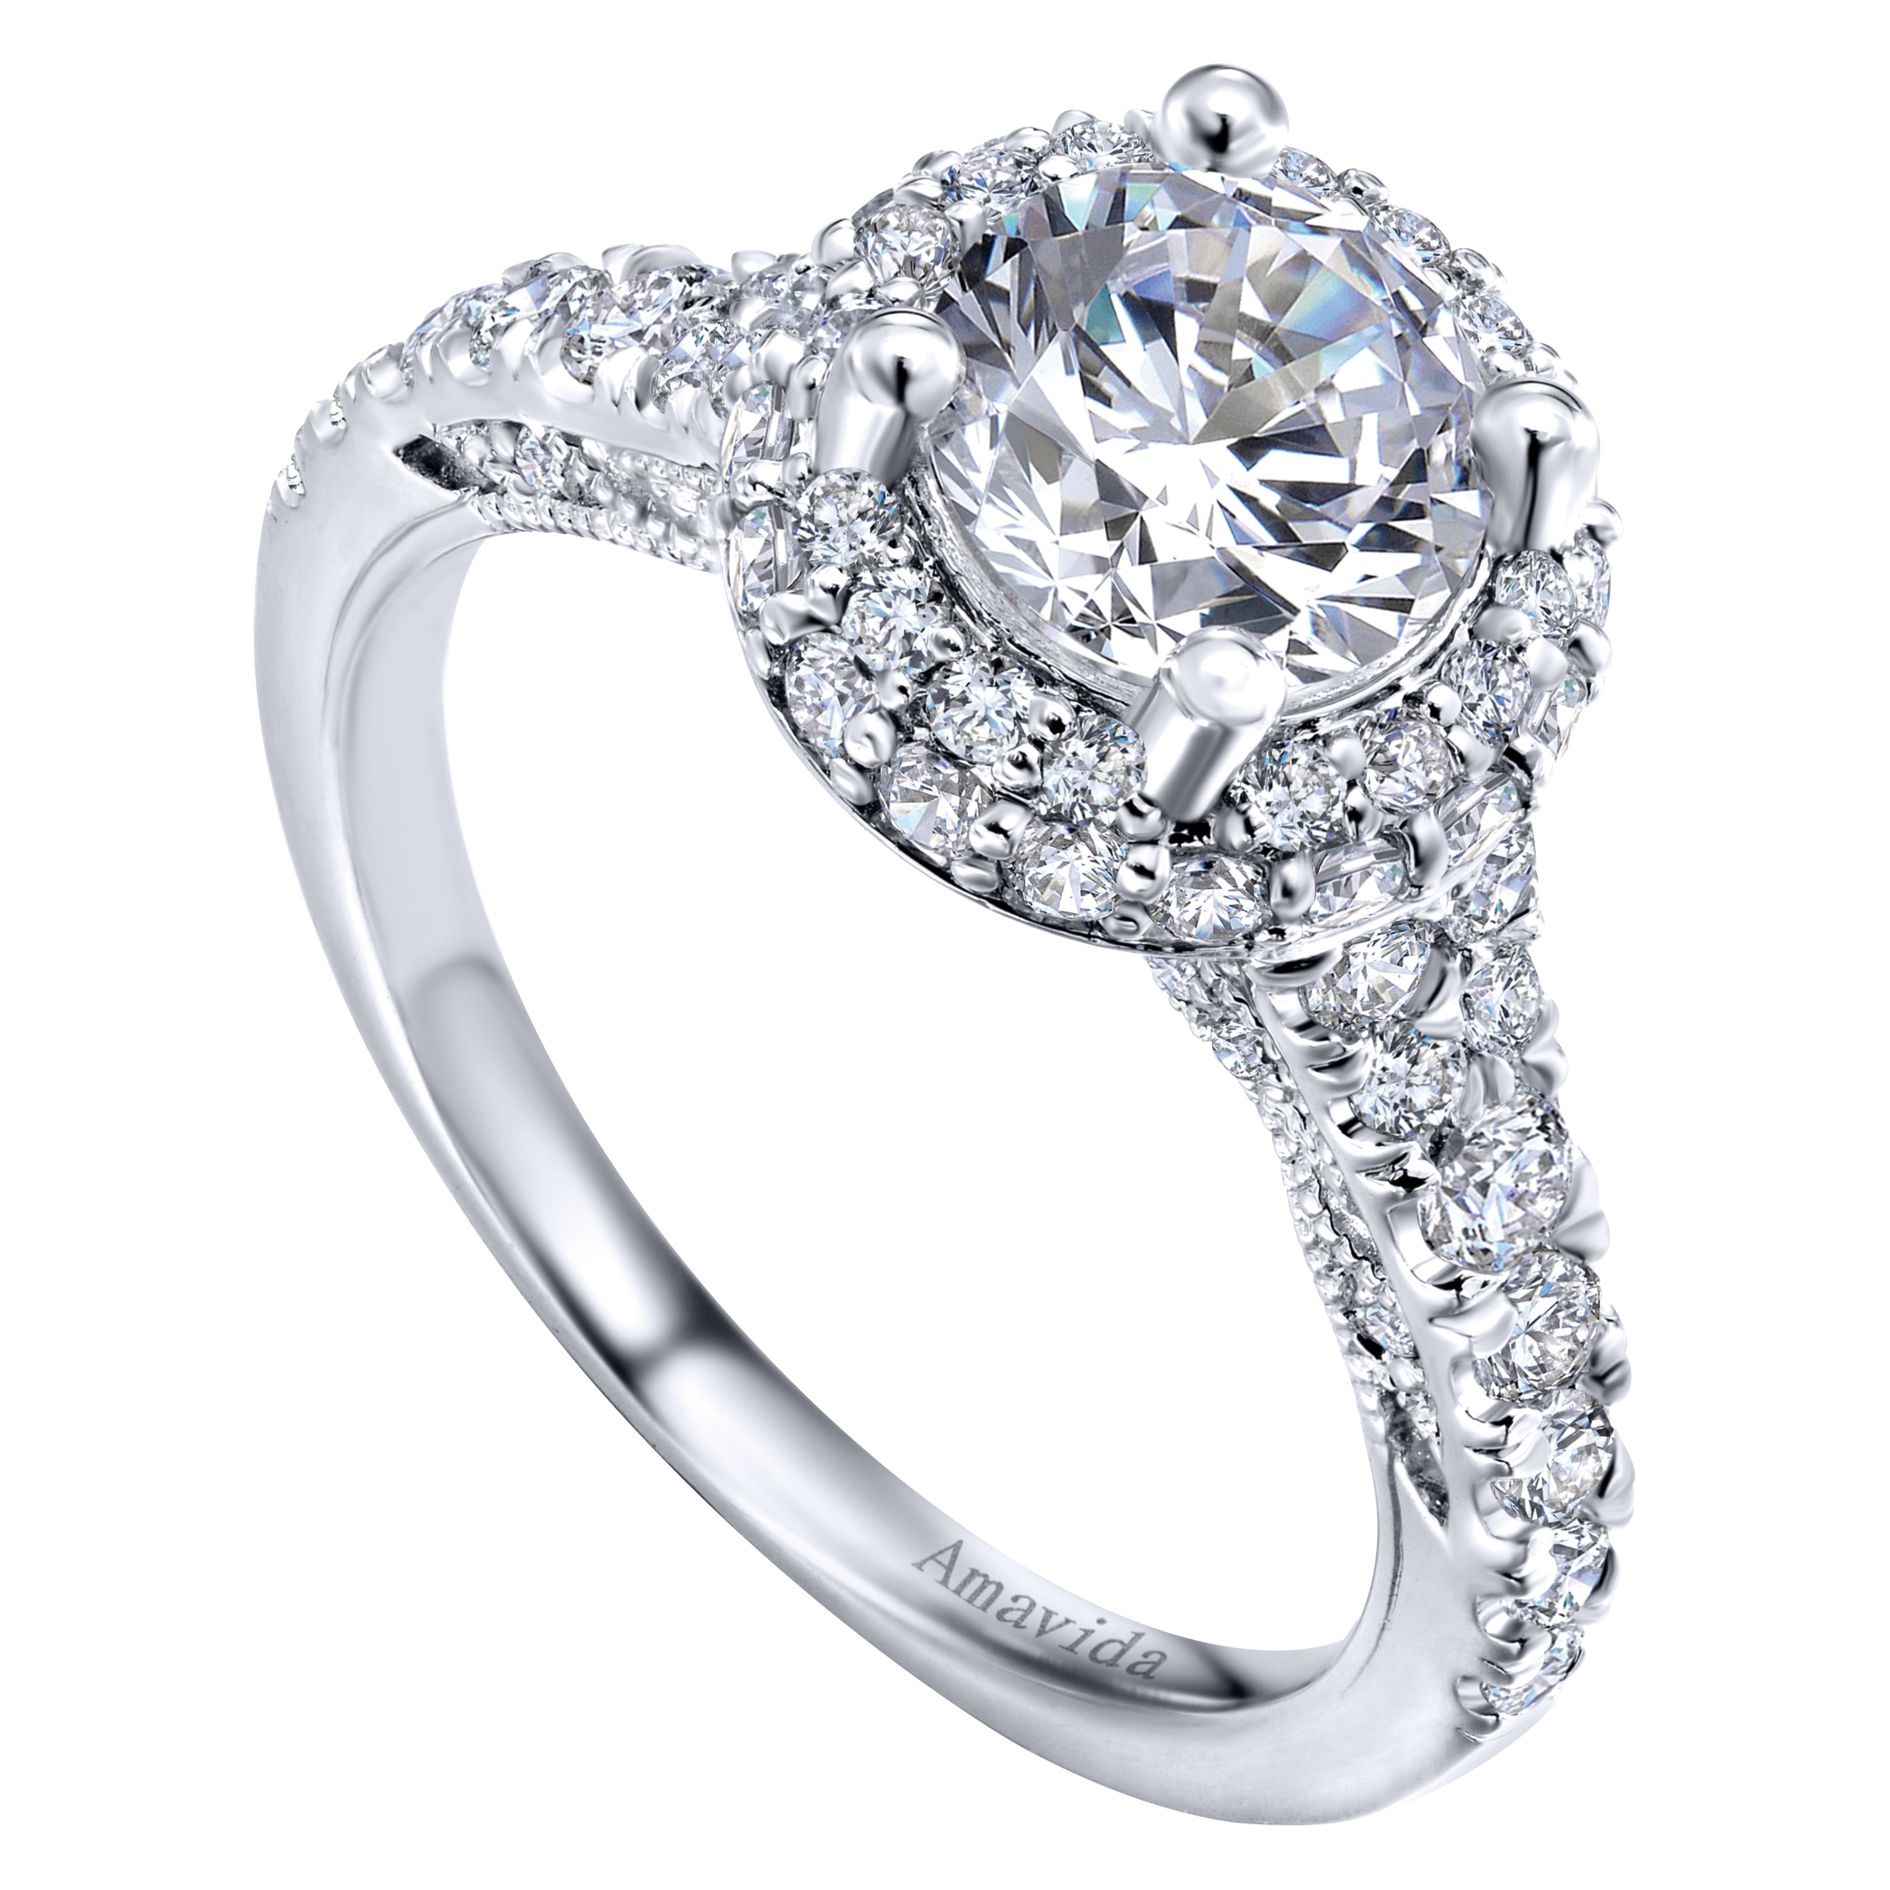 Engagement Rings - WHITE GOLD ROUND HALO DIAMOND ENGAGEMENT RING - image #3